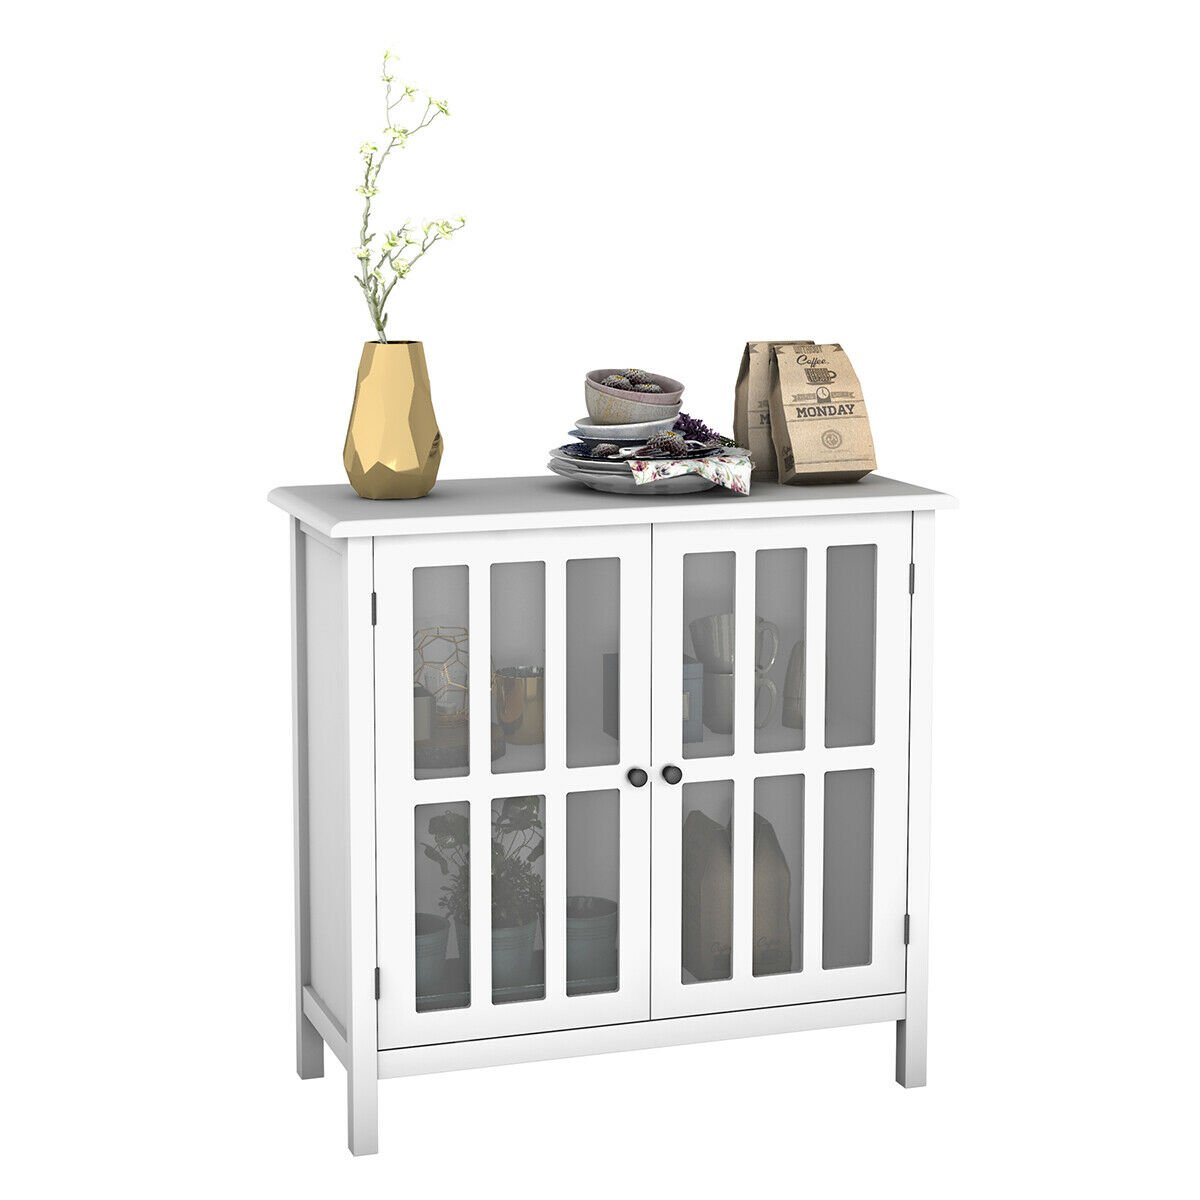 Admirable Storage Buffet Cabinet Glass Door Sideboard Console Table Server Display Home Interior And Landscaping Fragforummapetitesourisinfo